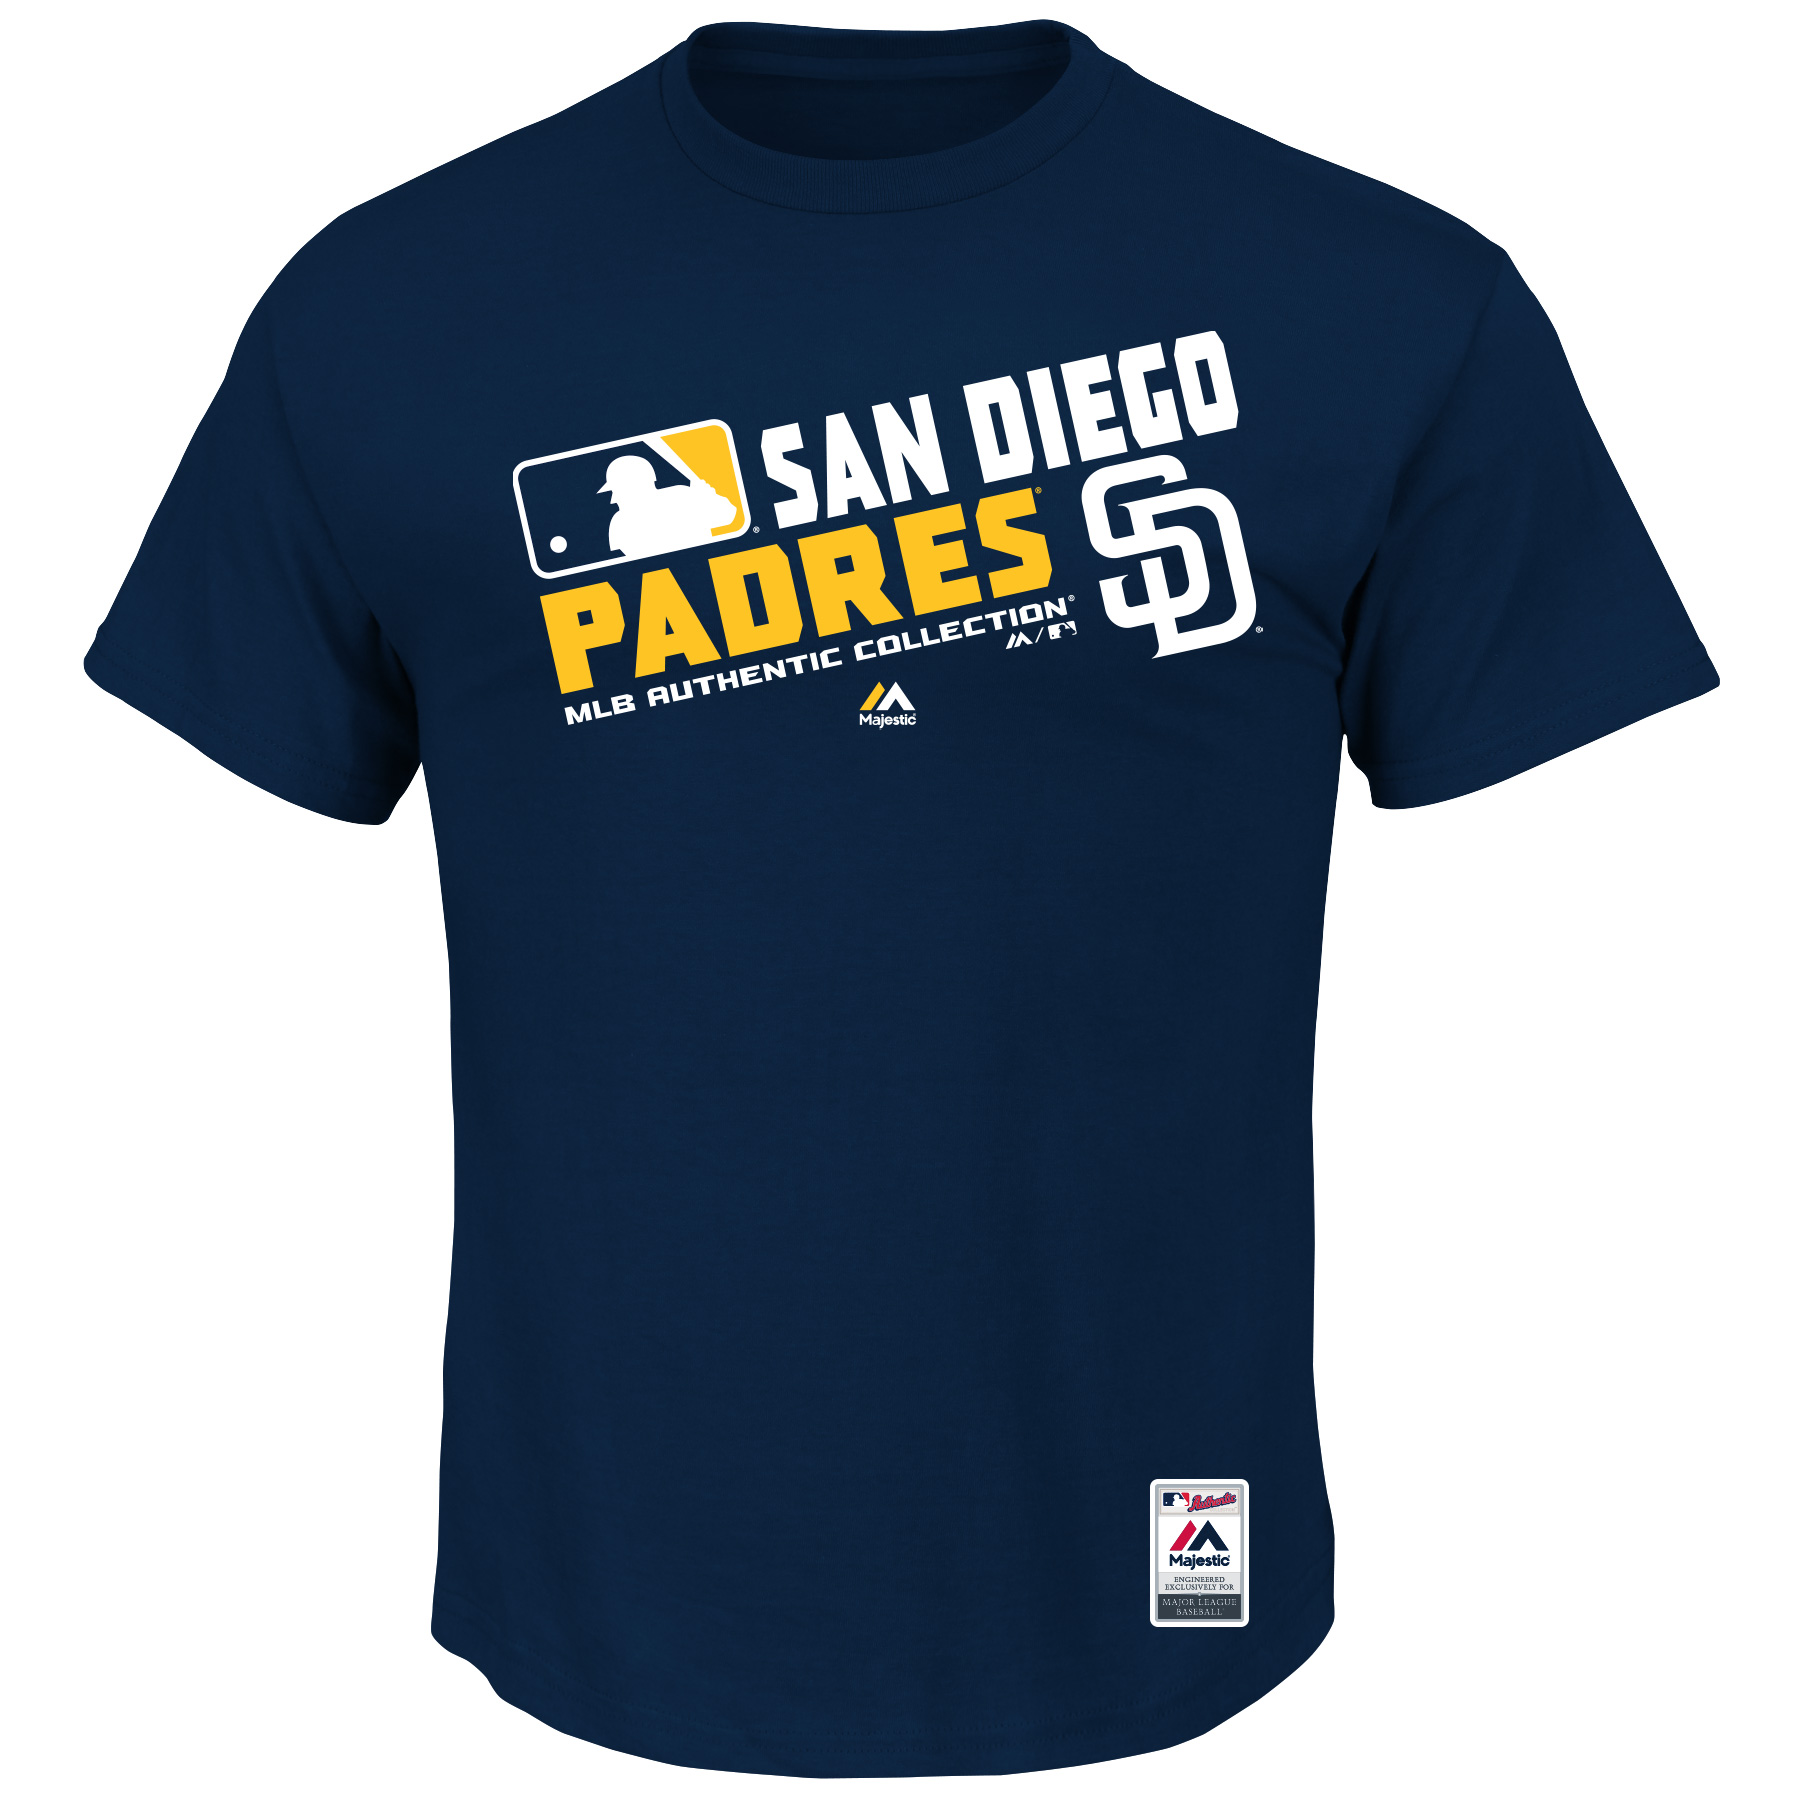 San Diego Padres Majestic Team Choice T-Shirt - Navy